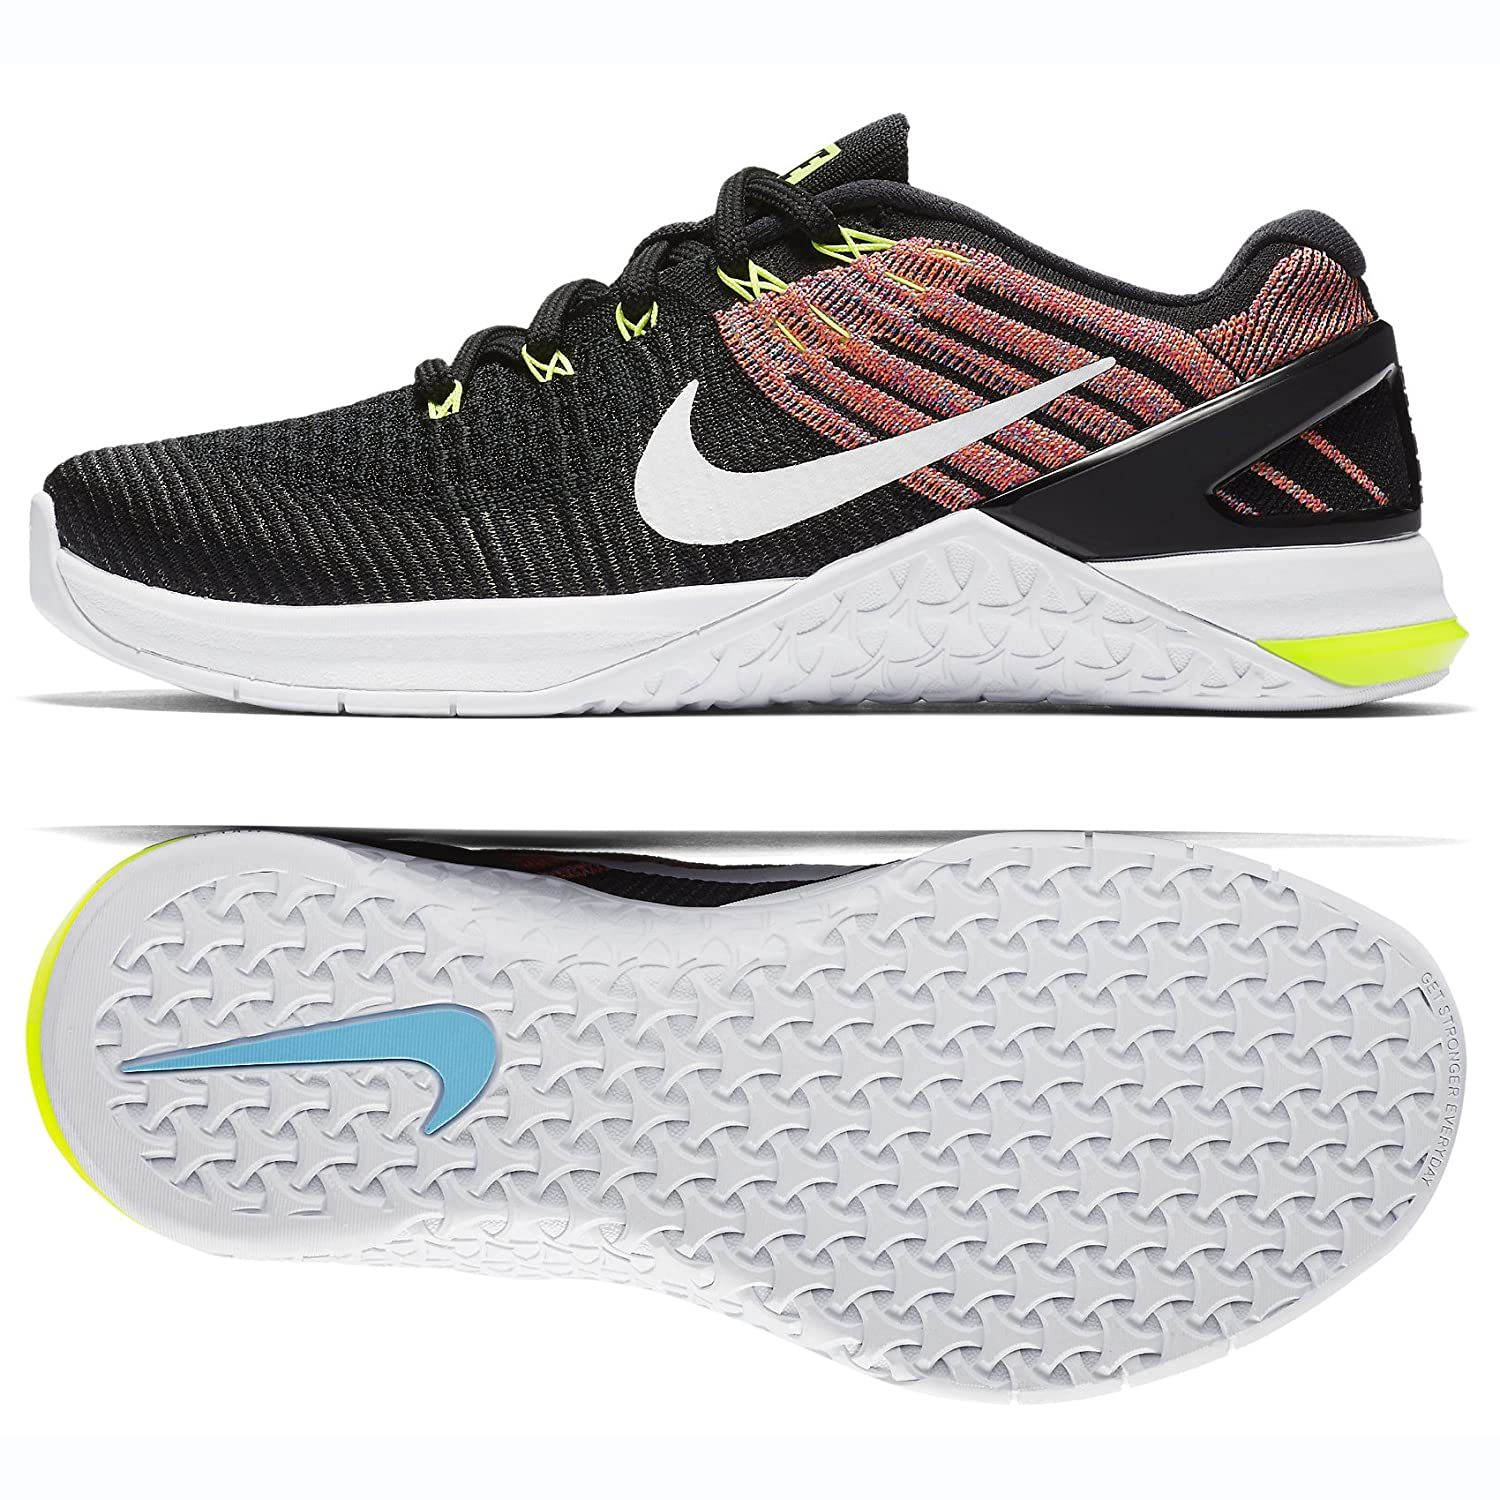 Nike Womens Metcon 3 Training Shoes B077QN1QY1 8.5 B(M) US|Black/White-volt-chlorine Blue